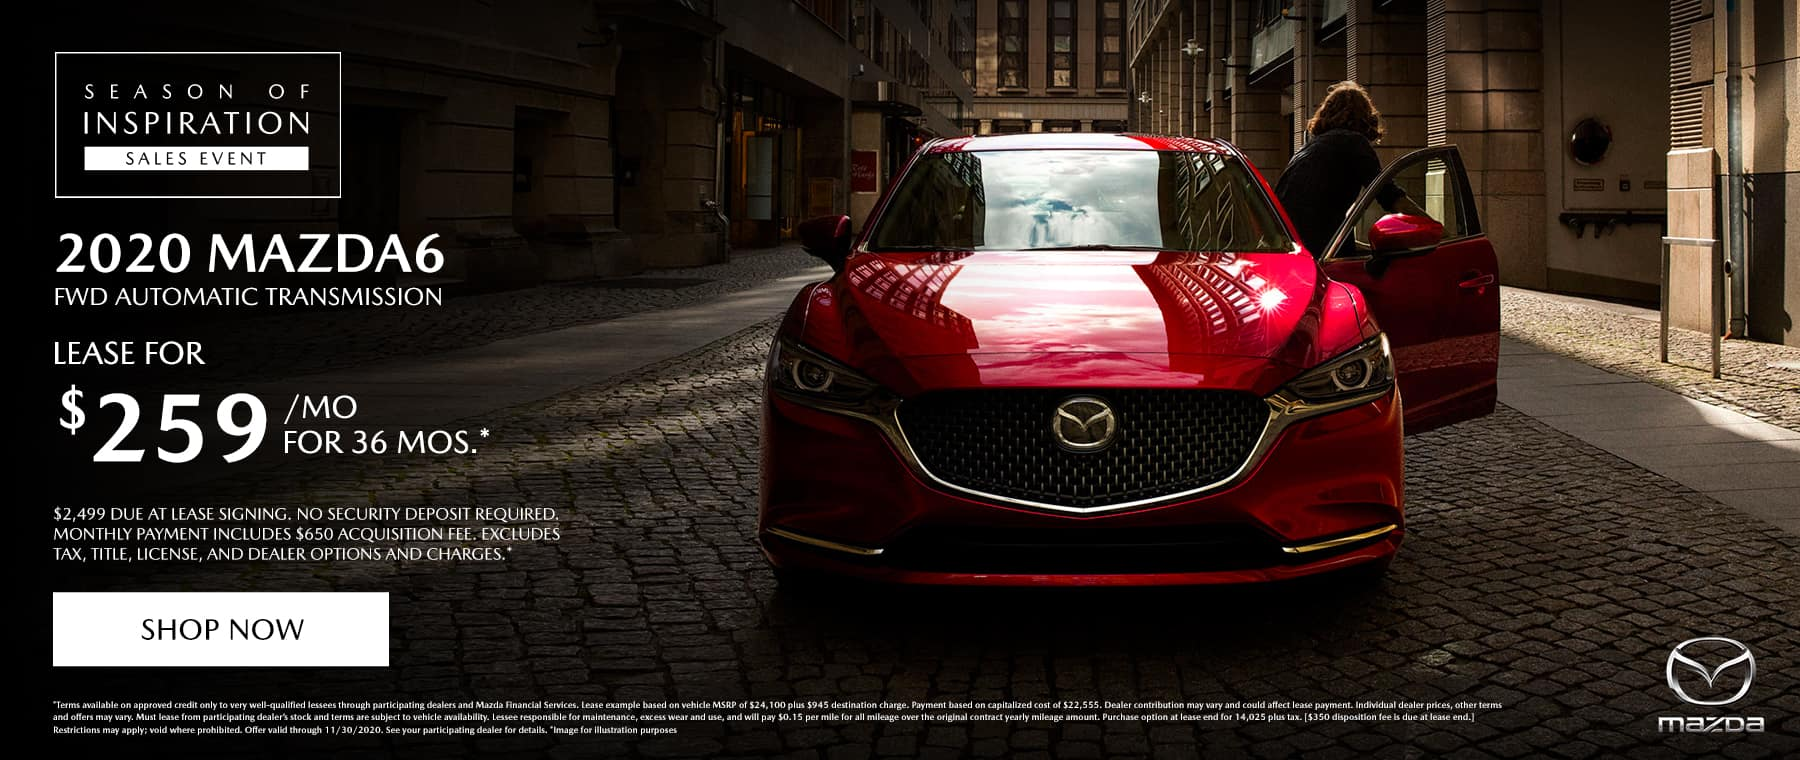 2020 Mazda6 (FWD / Automatic Transmission) lease for $259 a month / 36 months